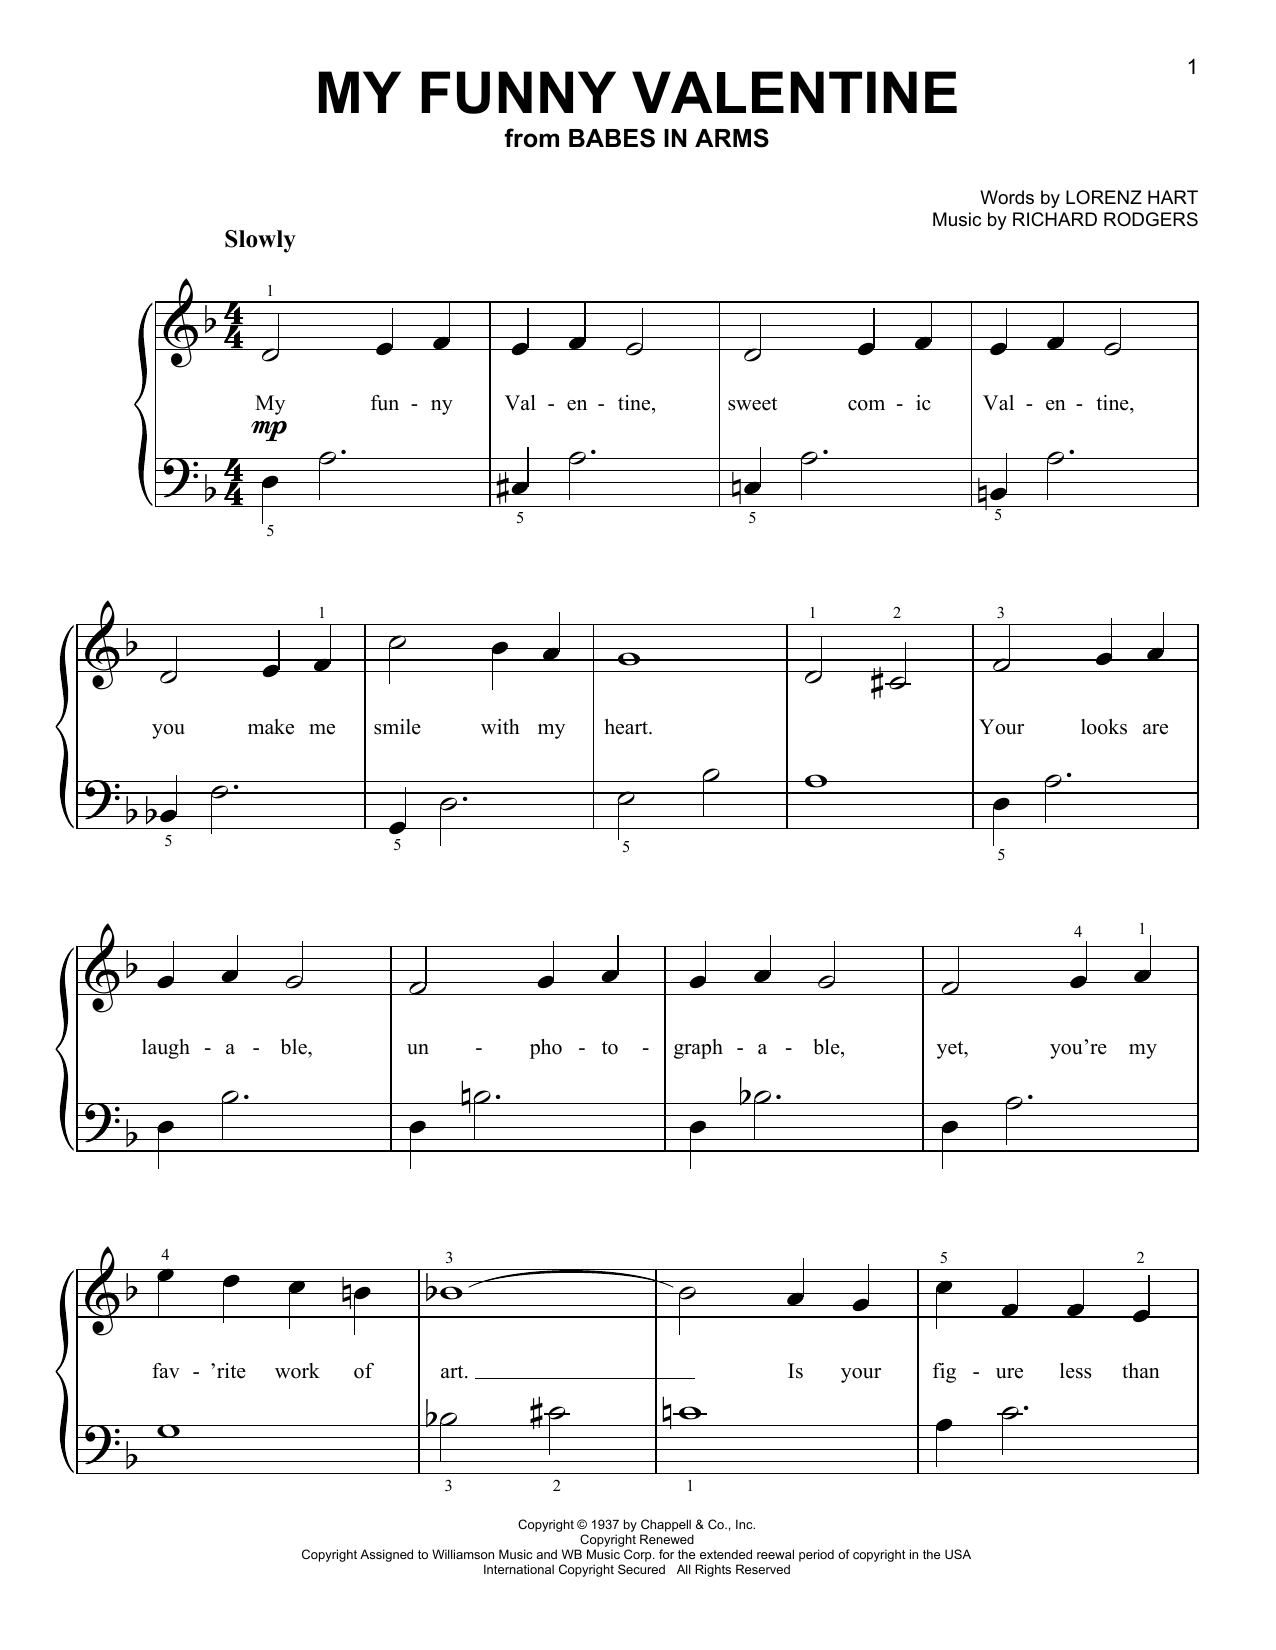 My Funny Valentine Print Sheet Music Now